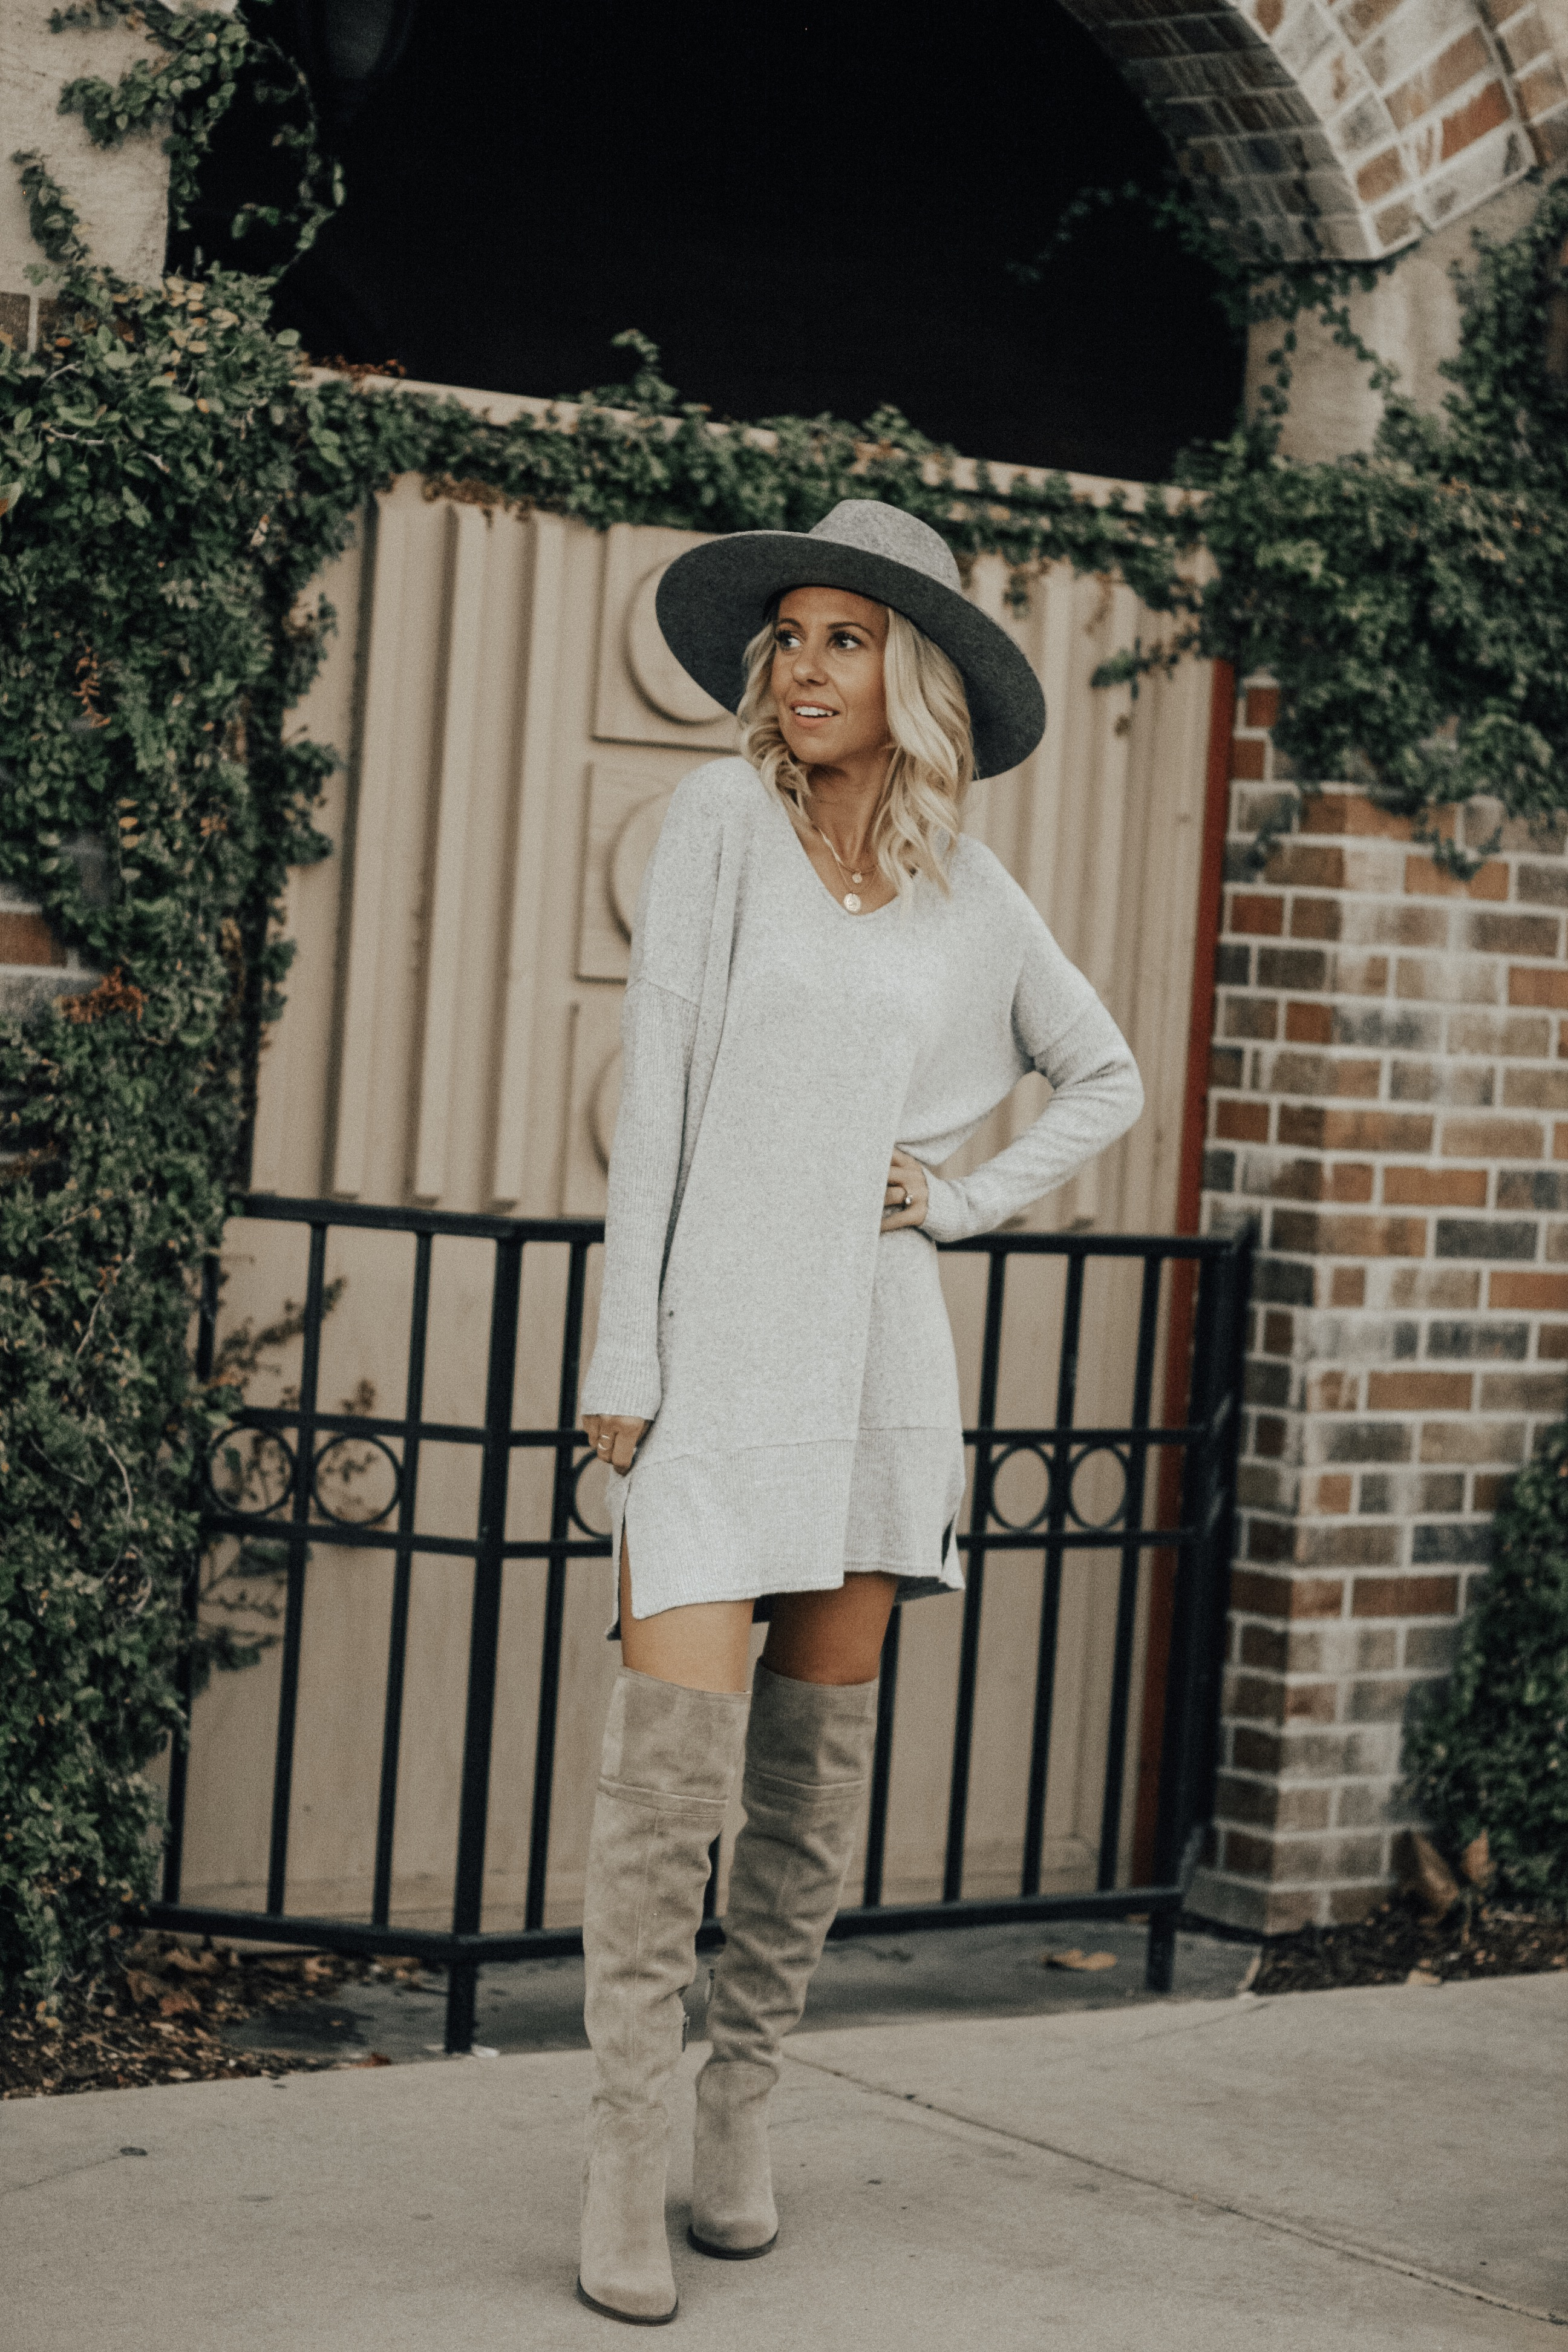 BLACK FRIDAY & CYBER MONDAY SALES- Jaclyn De Leon Style + online shopping + thanksgiving + daily deals + sale alert + target + american eagle + abercrombie + express + nordstrom + OTK boots + sweater dress + street style + fall outfit inspiration + holiday look + christmas shopping + gift giving + sale alert